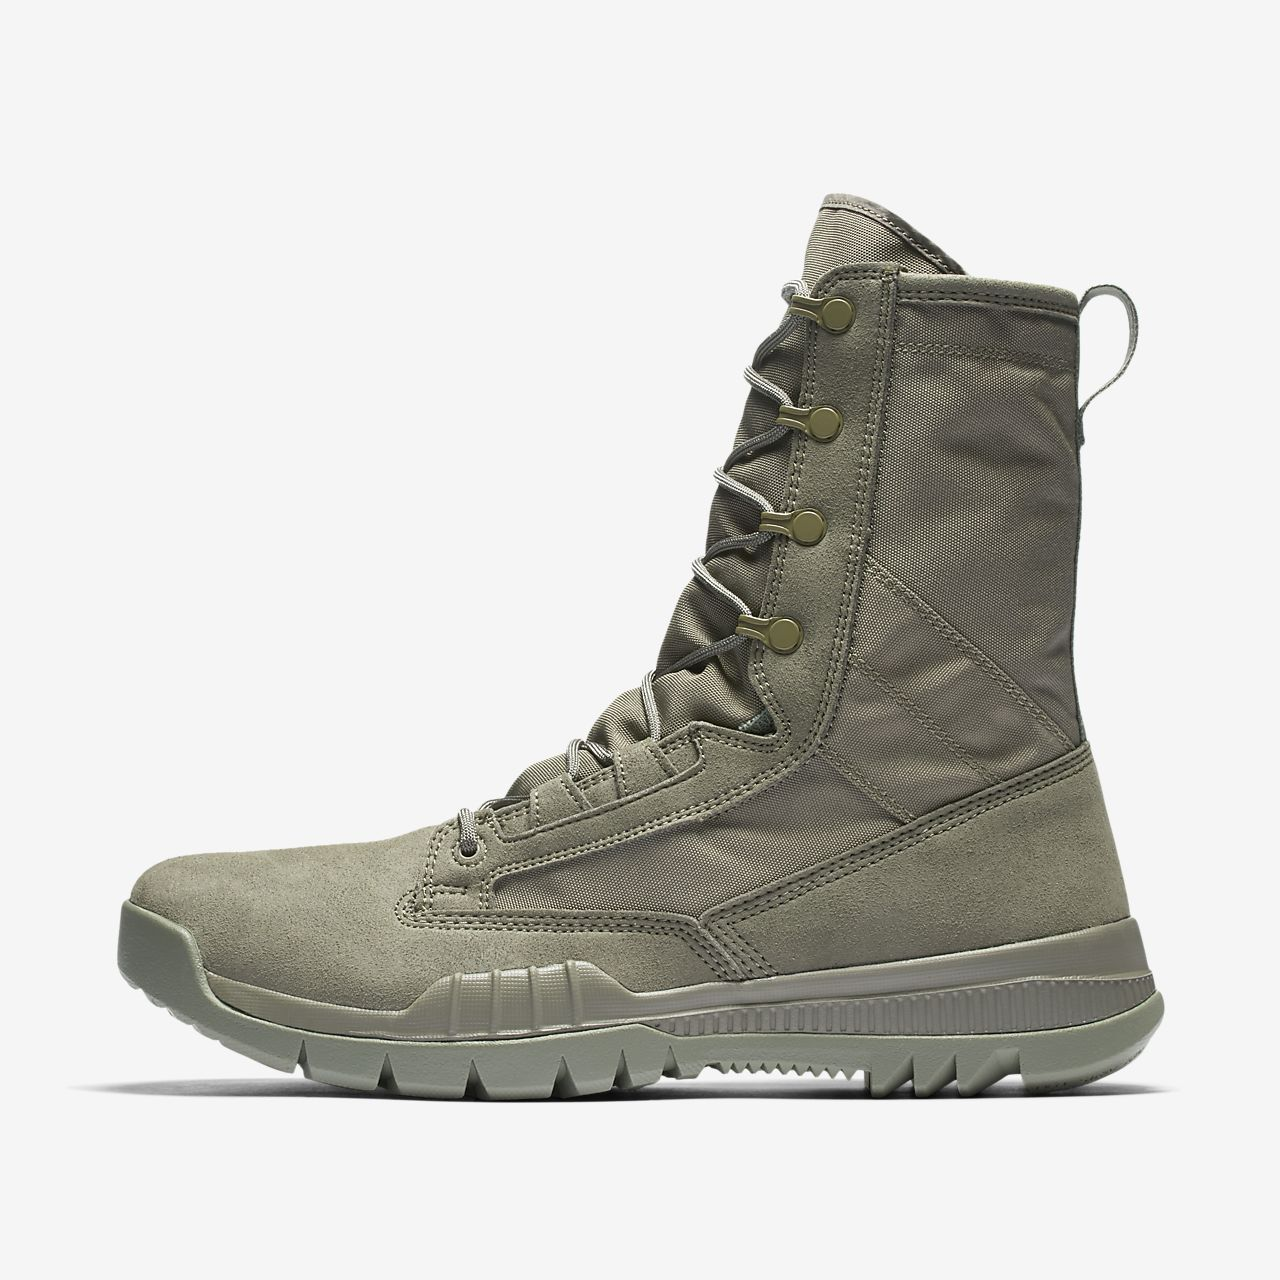 Nike SFB Field 20.5cm (approx.) Men's Unisex Boots Grey/White iU6063O